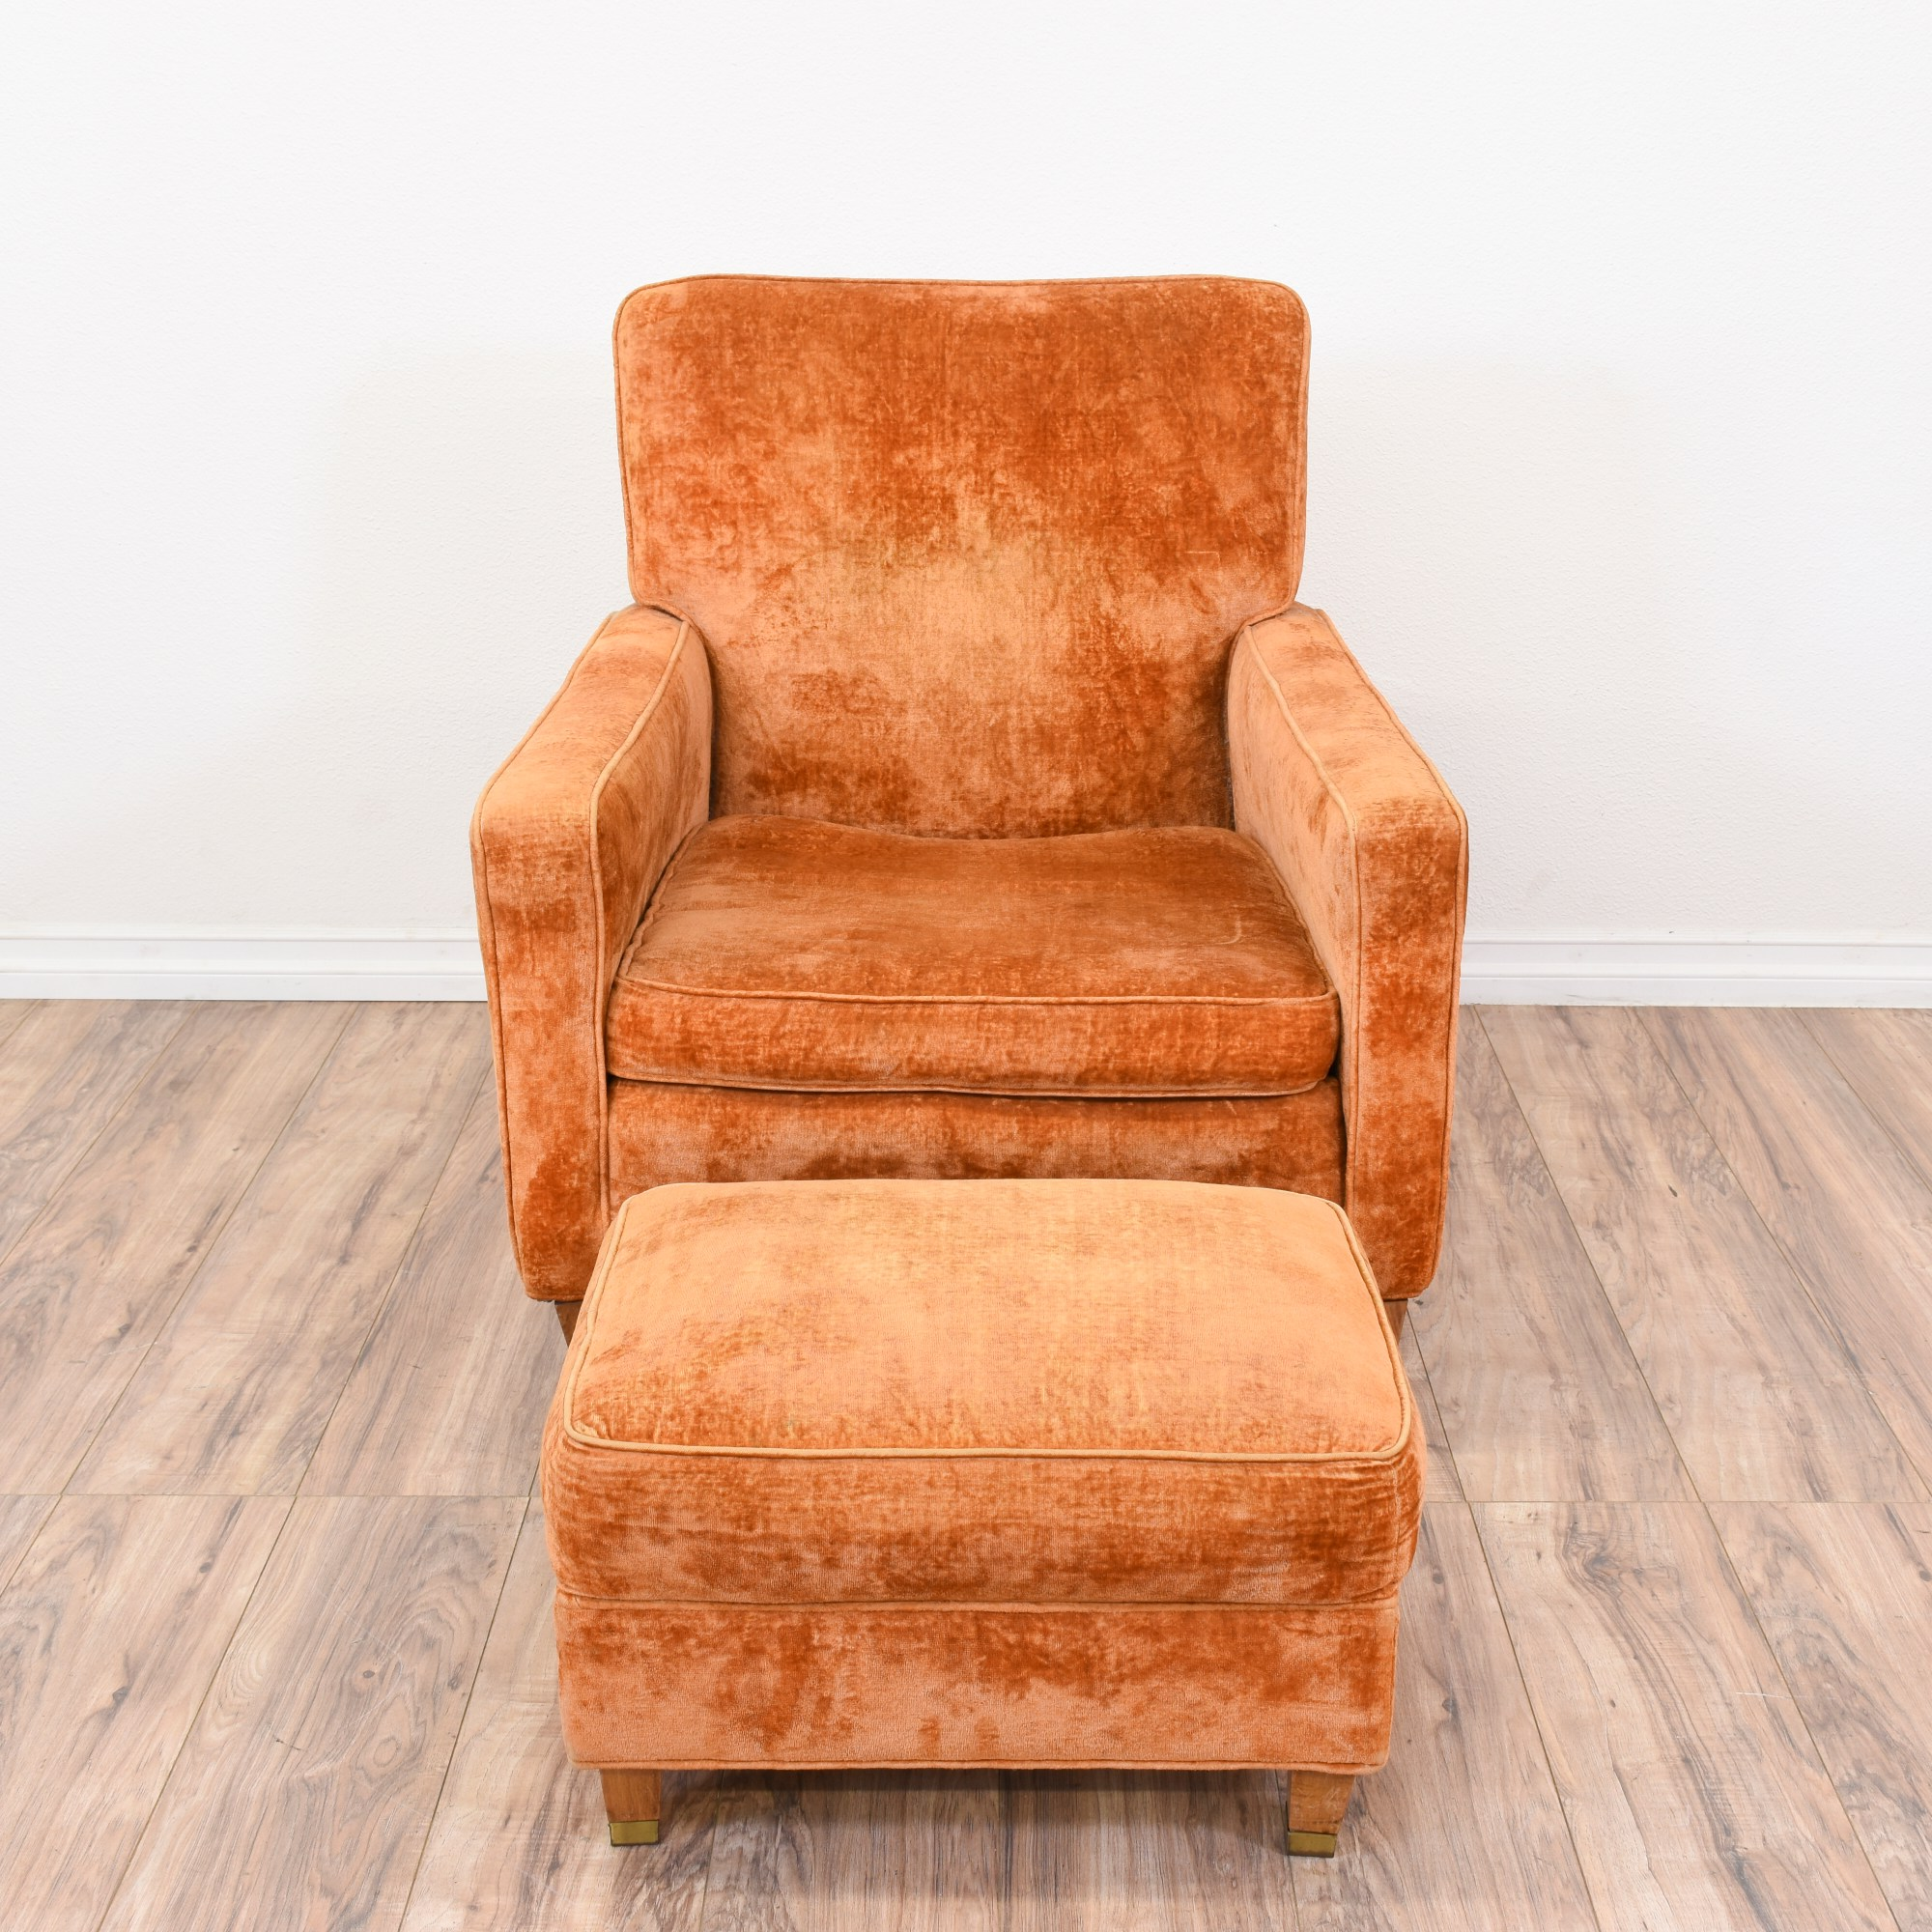 Orange Mid Century Modern Chair Orange Velvet Mid Century Modern Chair And Ottoman